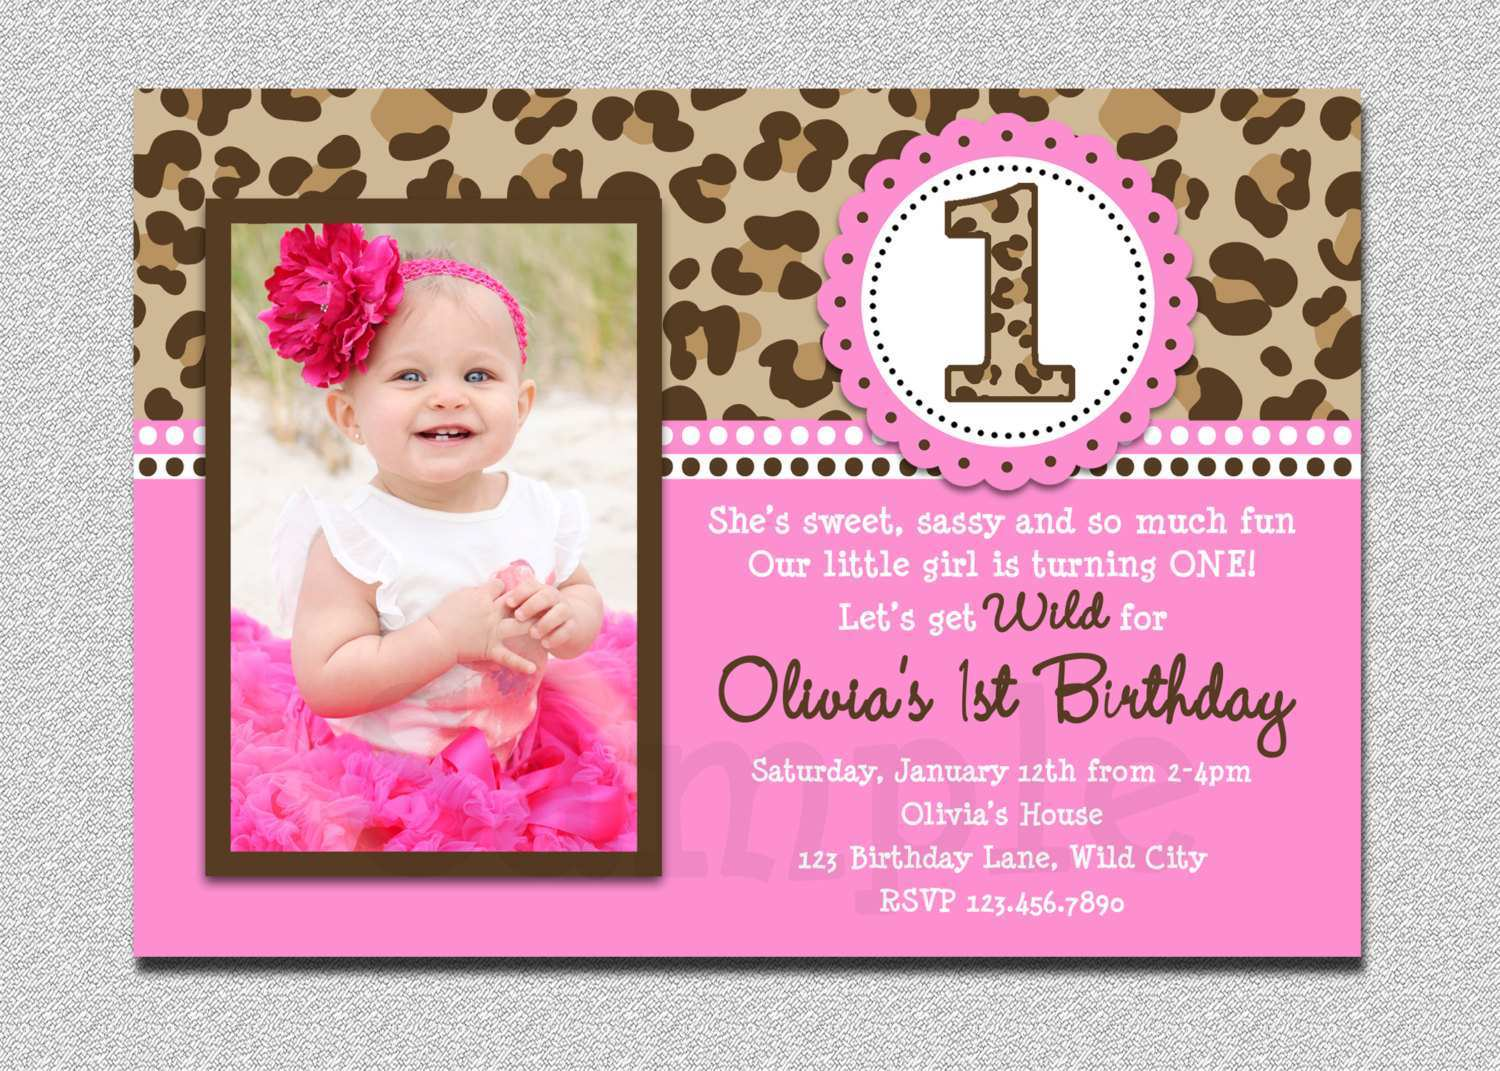 50 Best Birthday Invitation Templates For 2 Years Old Girl Now for Birthday Invitation Templates For 2 Years Old Girl